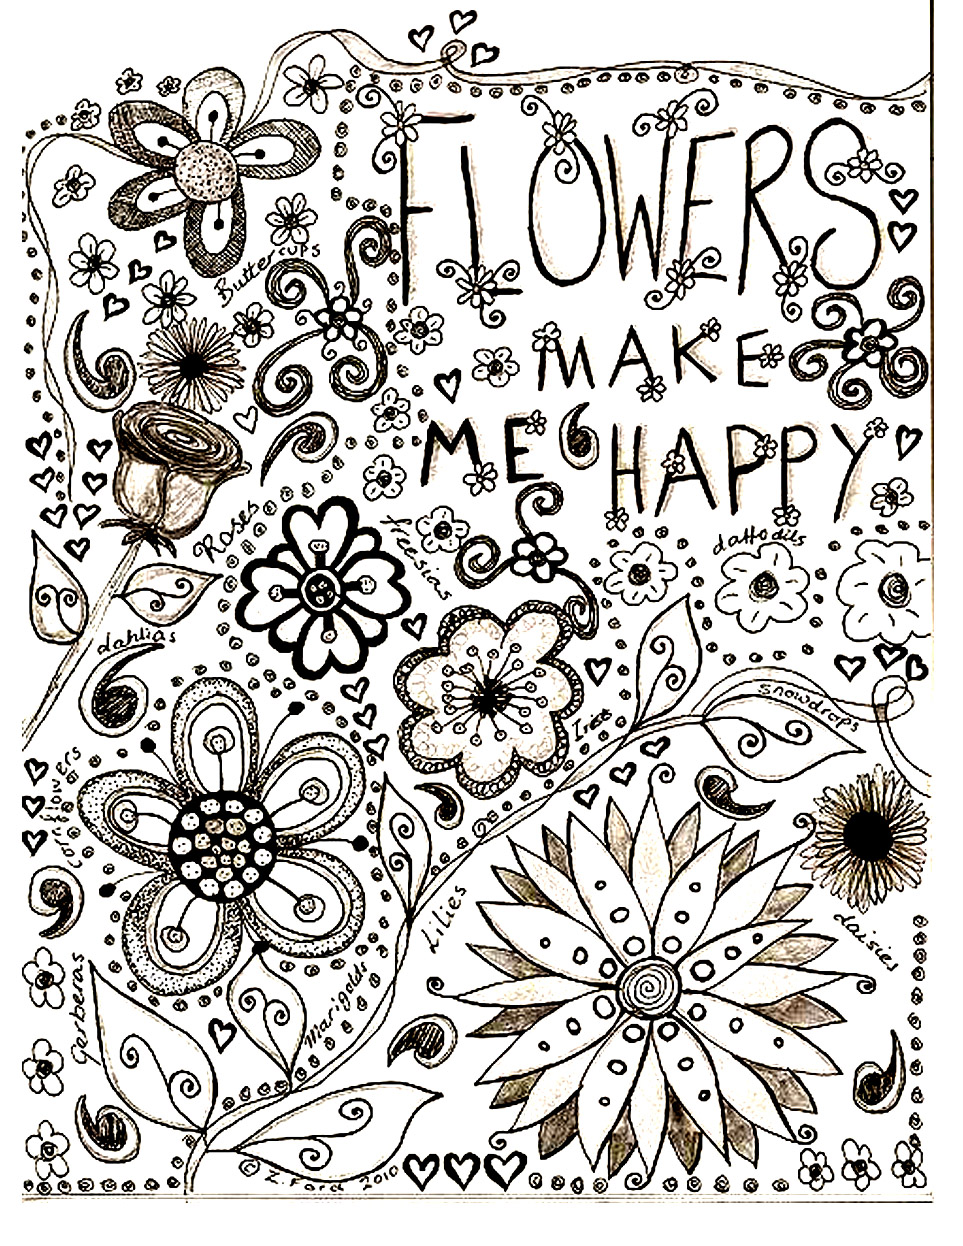 Flowers drawing flowers adult coloring pages - Dessin vegetation ...